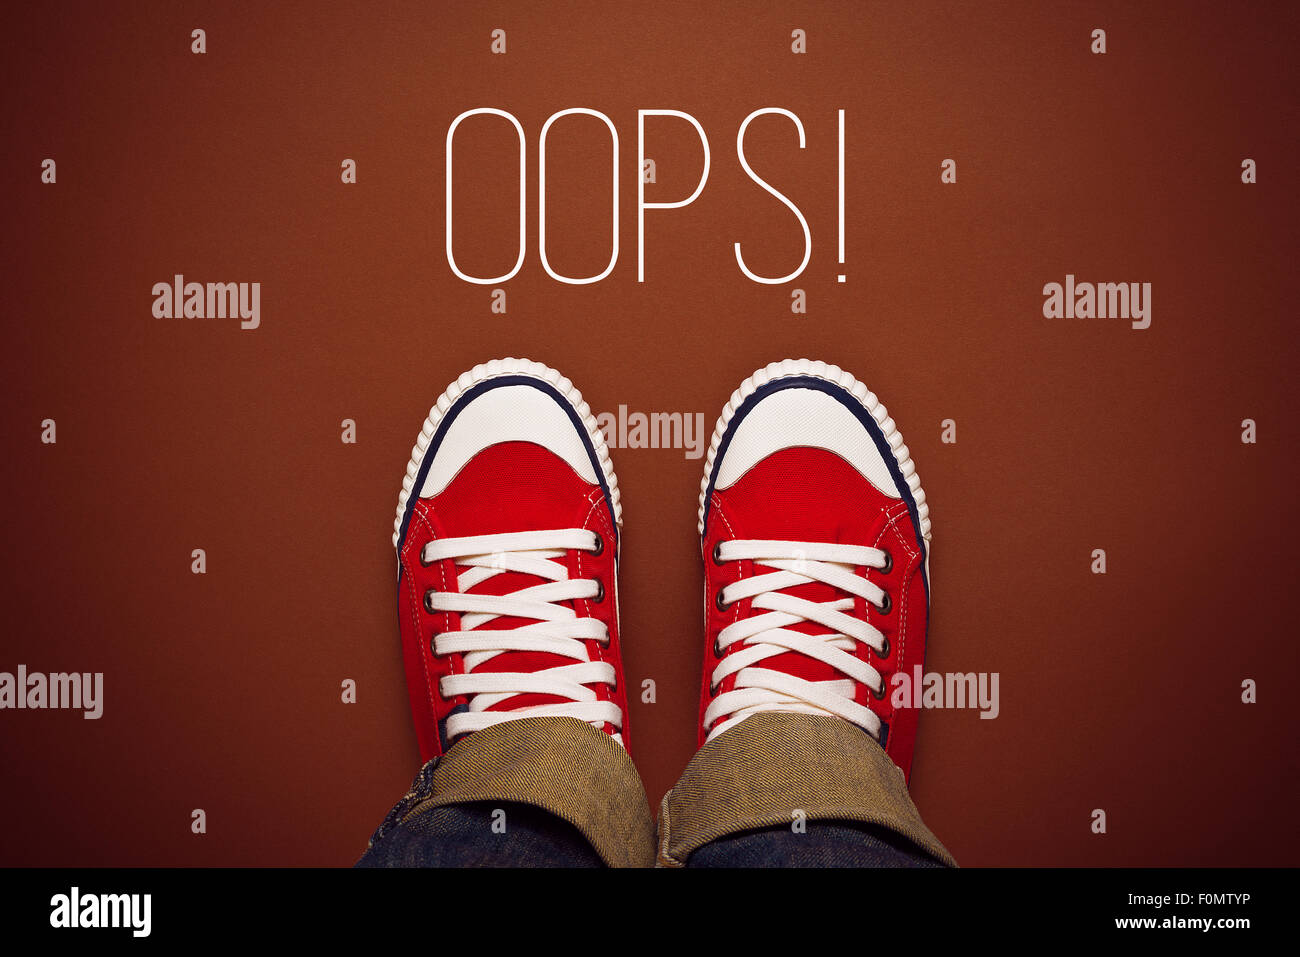 Oops, Young Person MAde a Mistake Concept with Red Sneakers from above, Top View - Stock Image